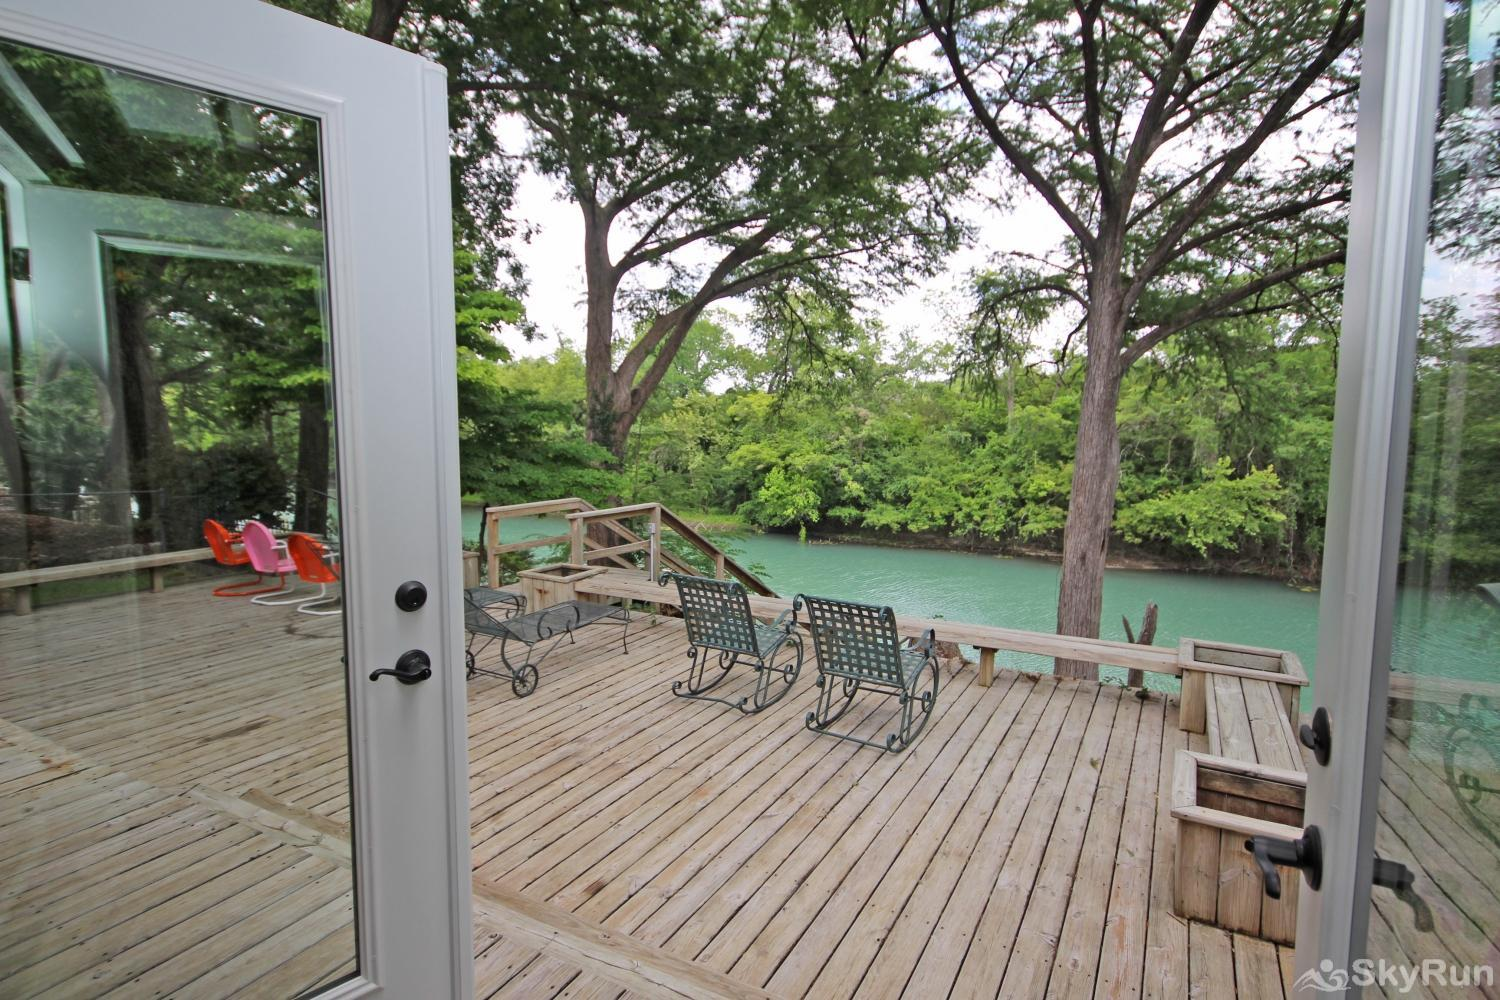 MAVERICK'S RIVER HAUS View of deck and Guadalupe River from living room